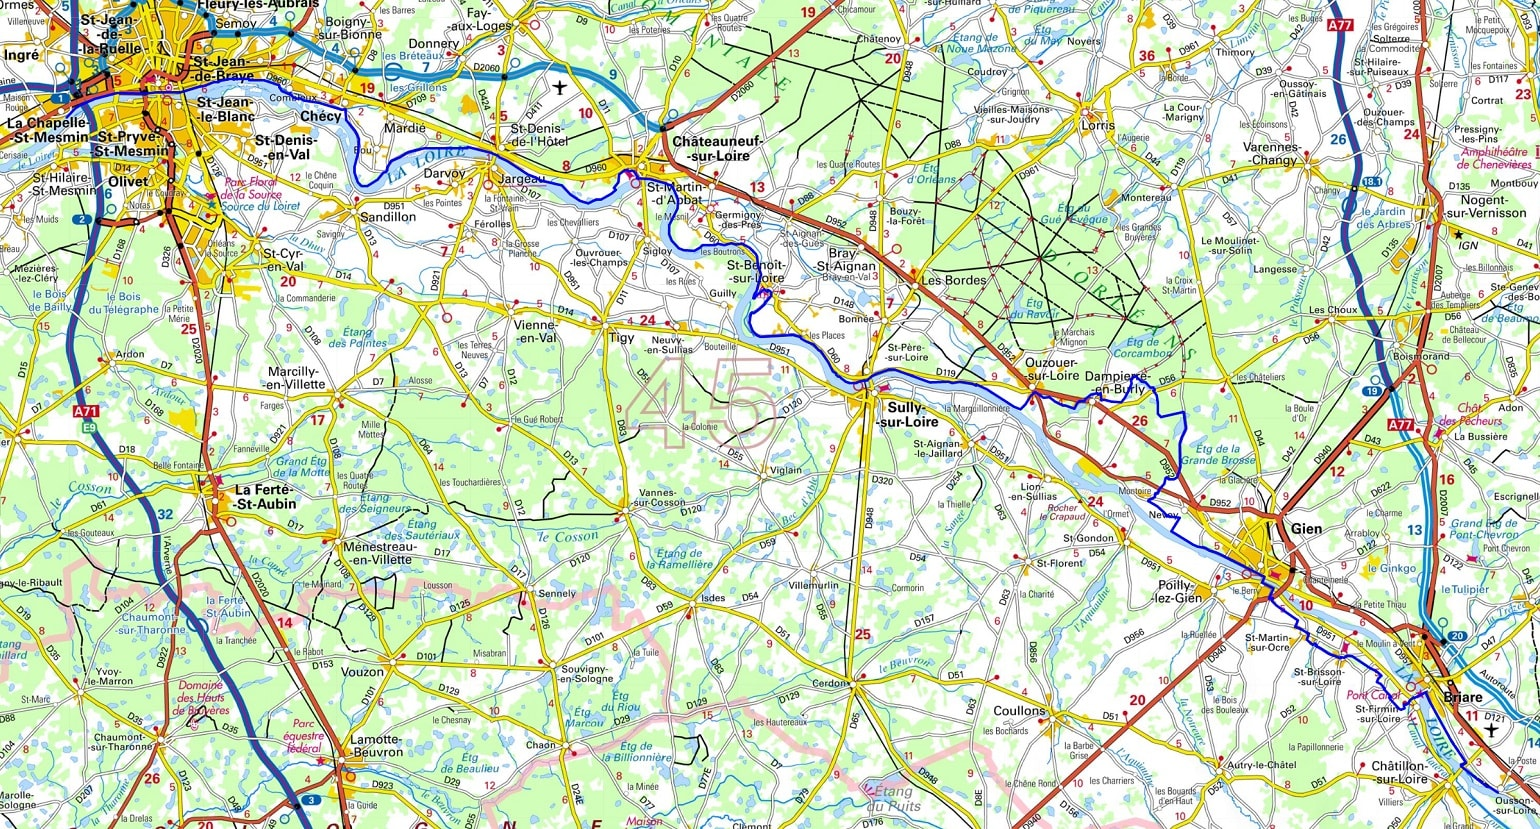 GR3 Hiking from Ousson-sur-Loire to La Chapelle St Mesmin (Loiret) 1